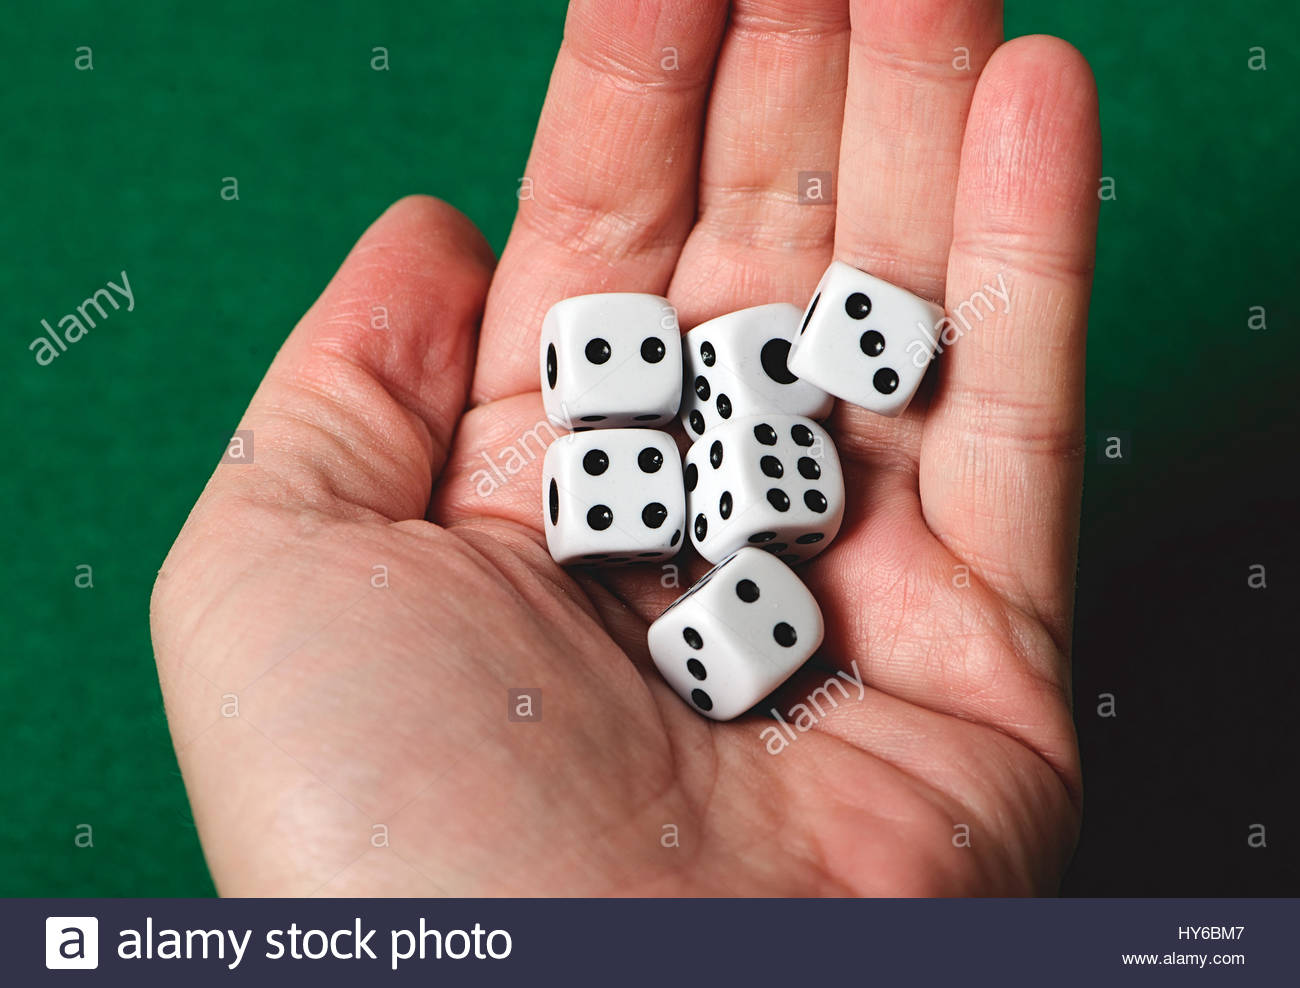 White dice on a hand. Isolated. Stock Photo